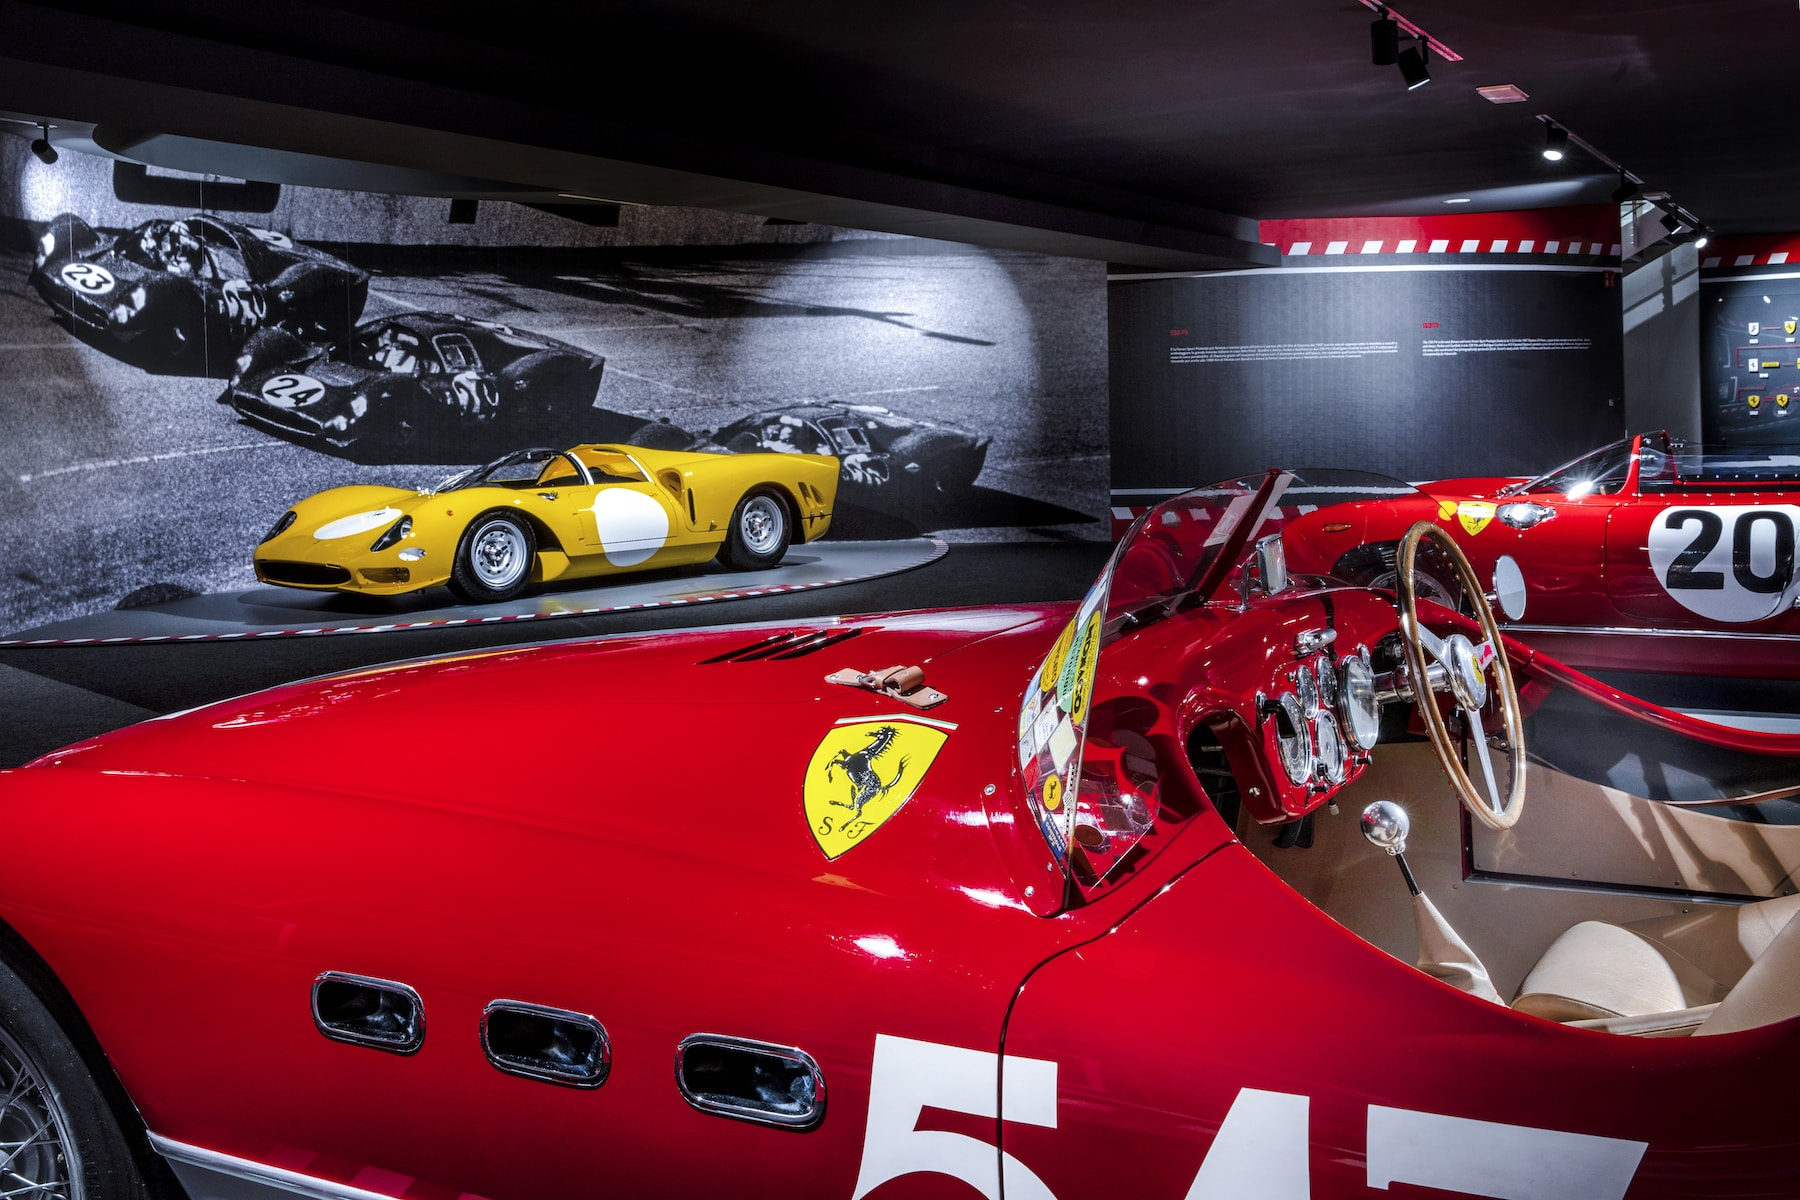 2019 Museo Ferrari 90 years exhibition 7.jpg